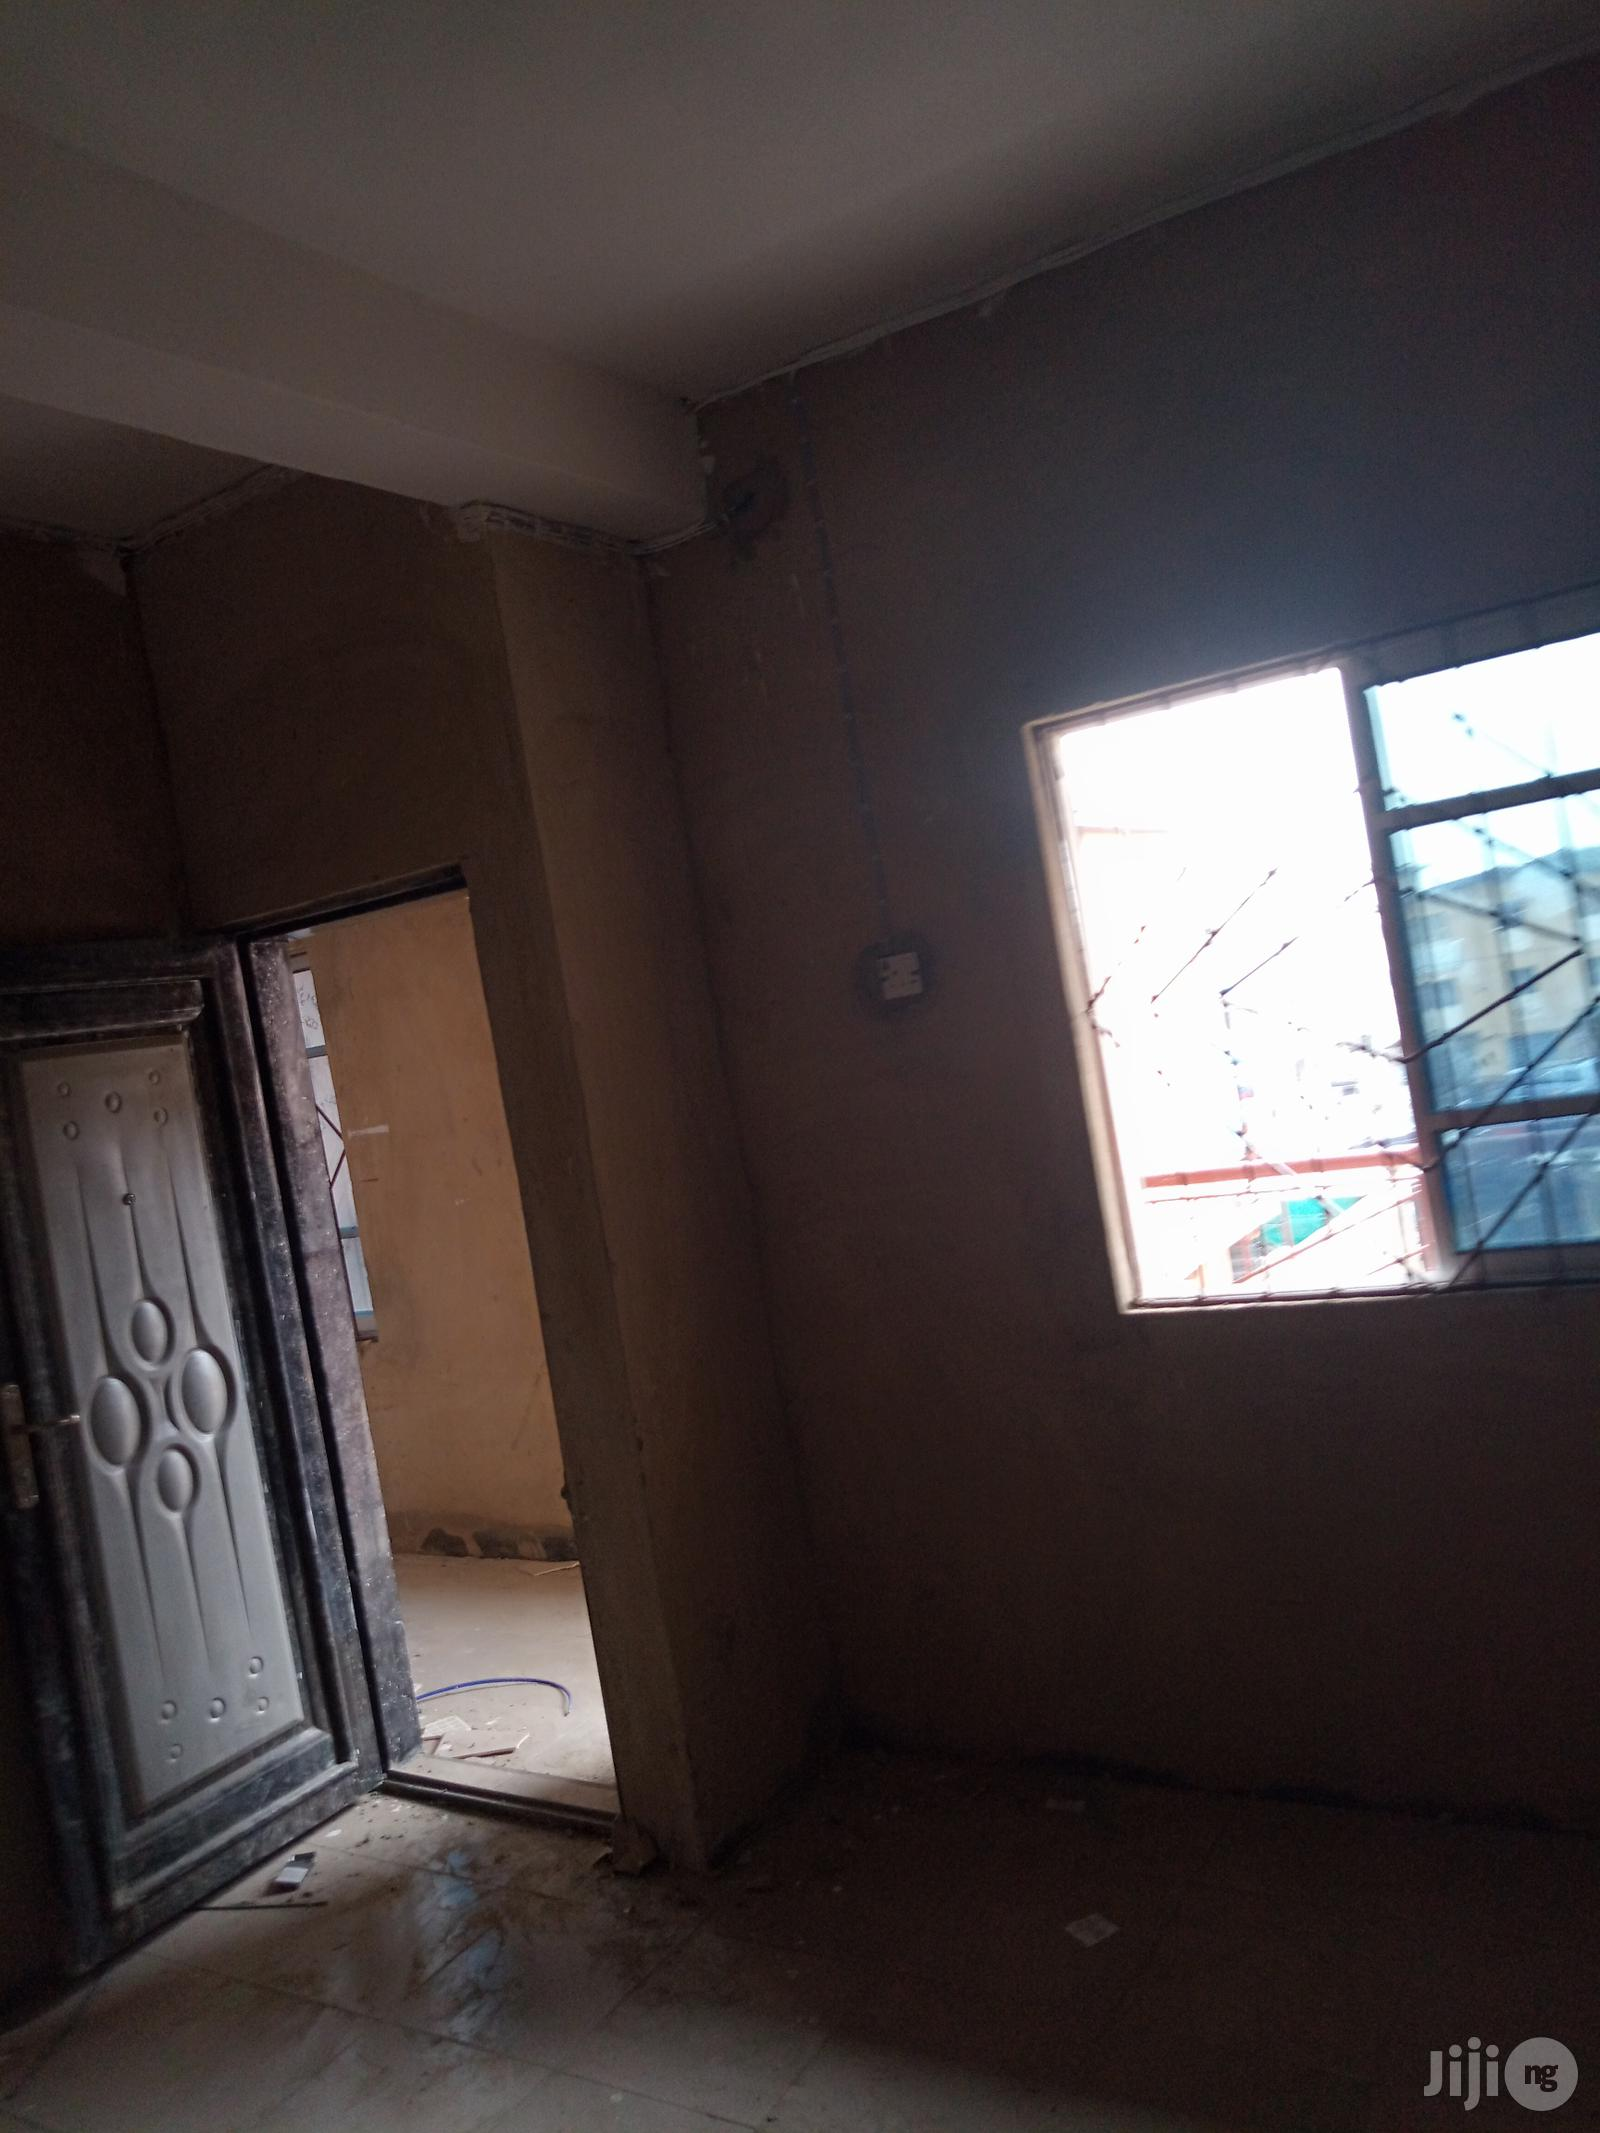 Spacious Nice 2bedroom for Rent at Idi-Oro Mushin. | Houses & Apartments For Rent for sale in Mushin, Lagos State, Nigeria